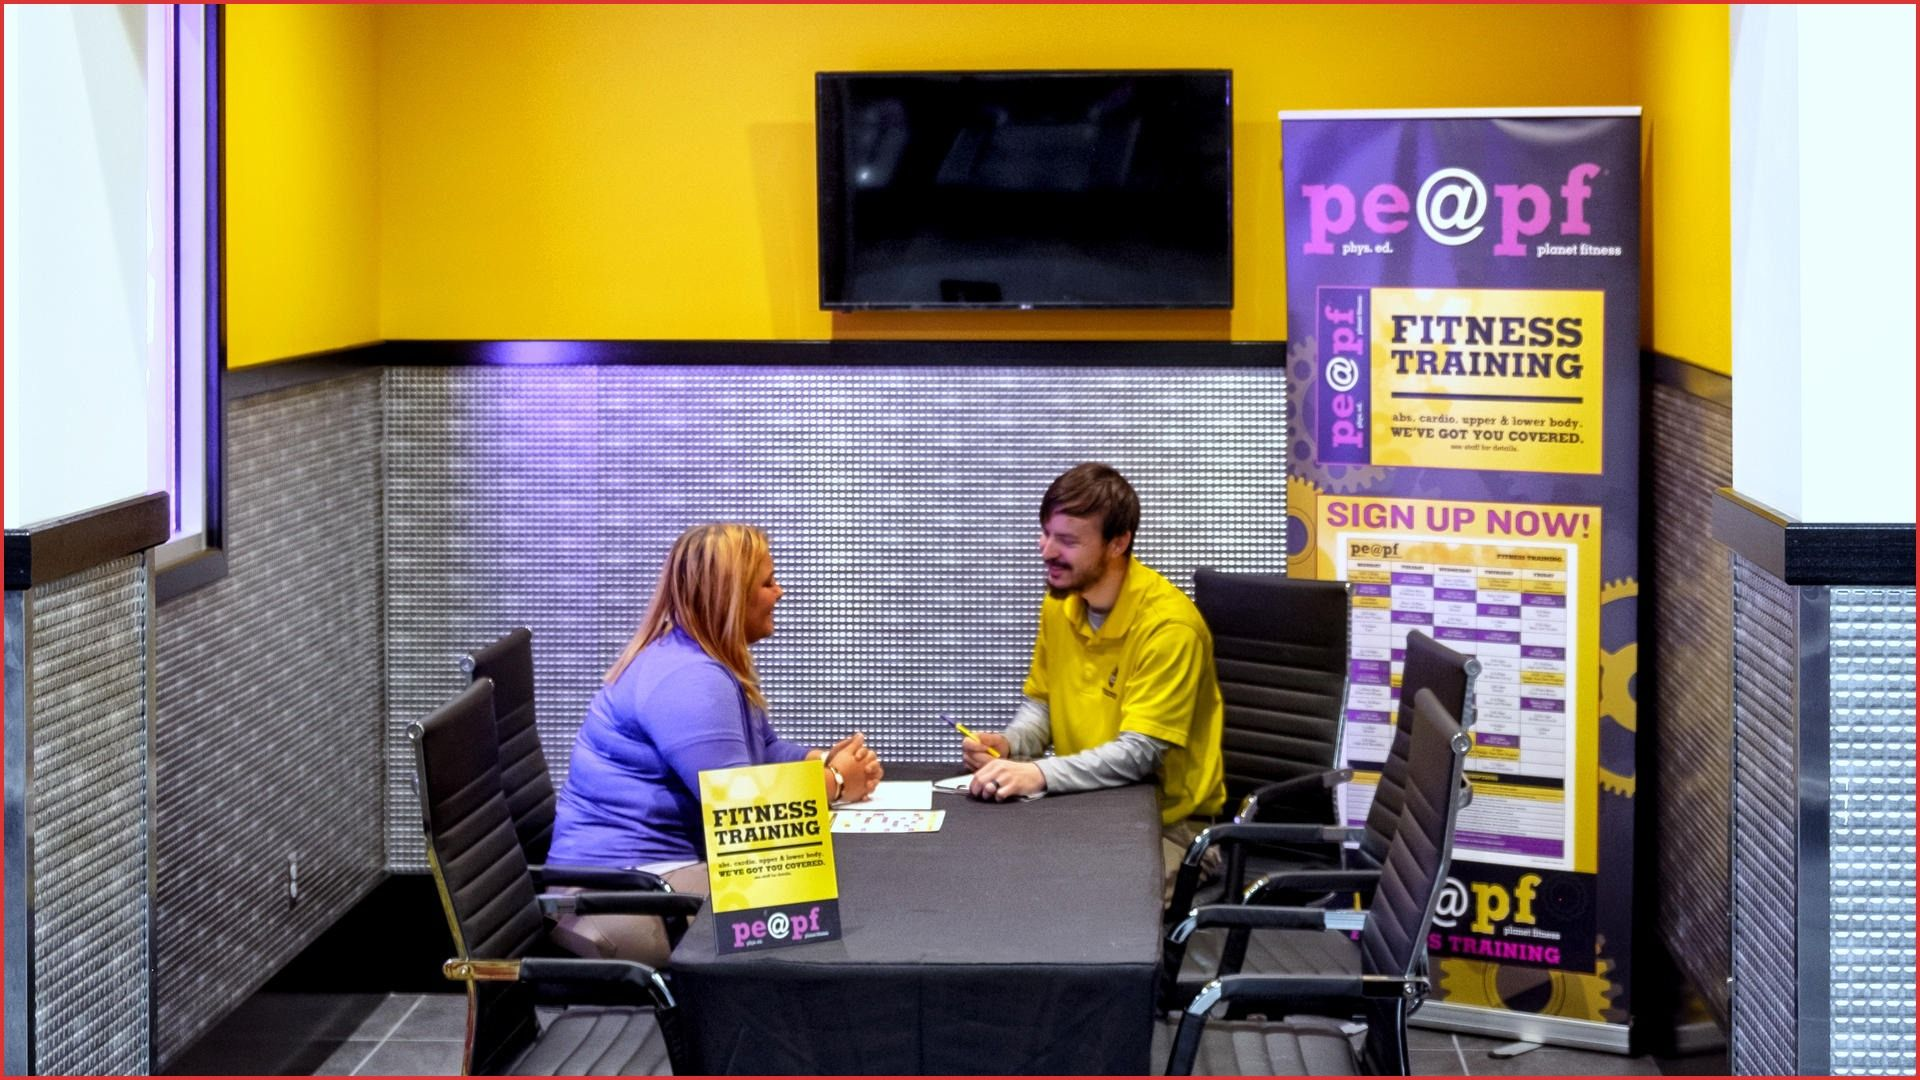 Planet Fitness Haircut Hours Planet Fitness Haircut Hours 19168 Planet Fitness Haircut Hours Planet Fitness Workout Teenager Haircuts Boys Planet Fitness Gym